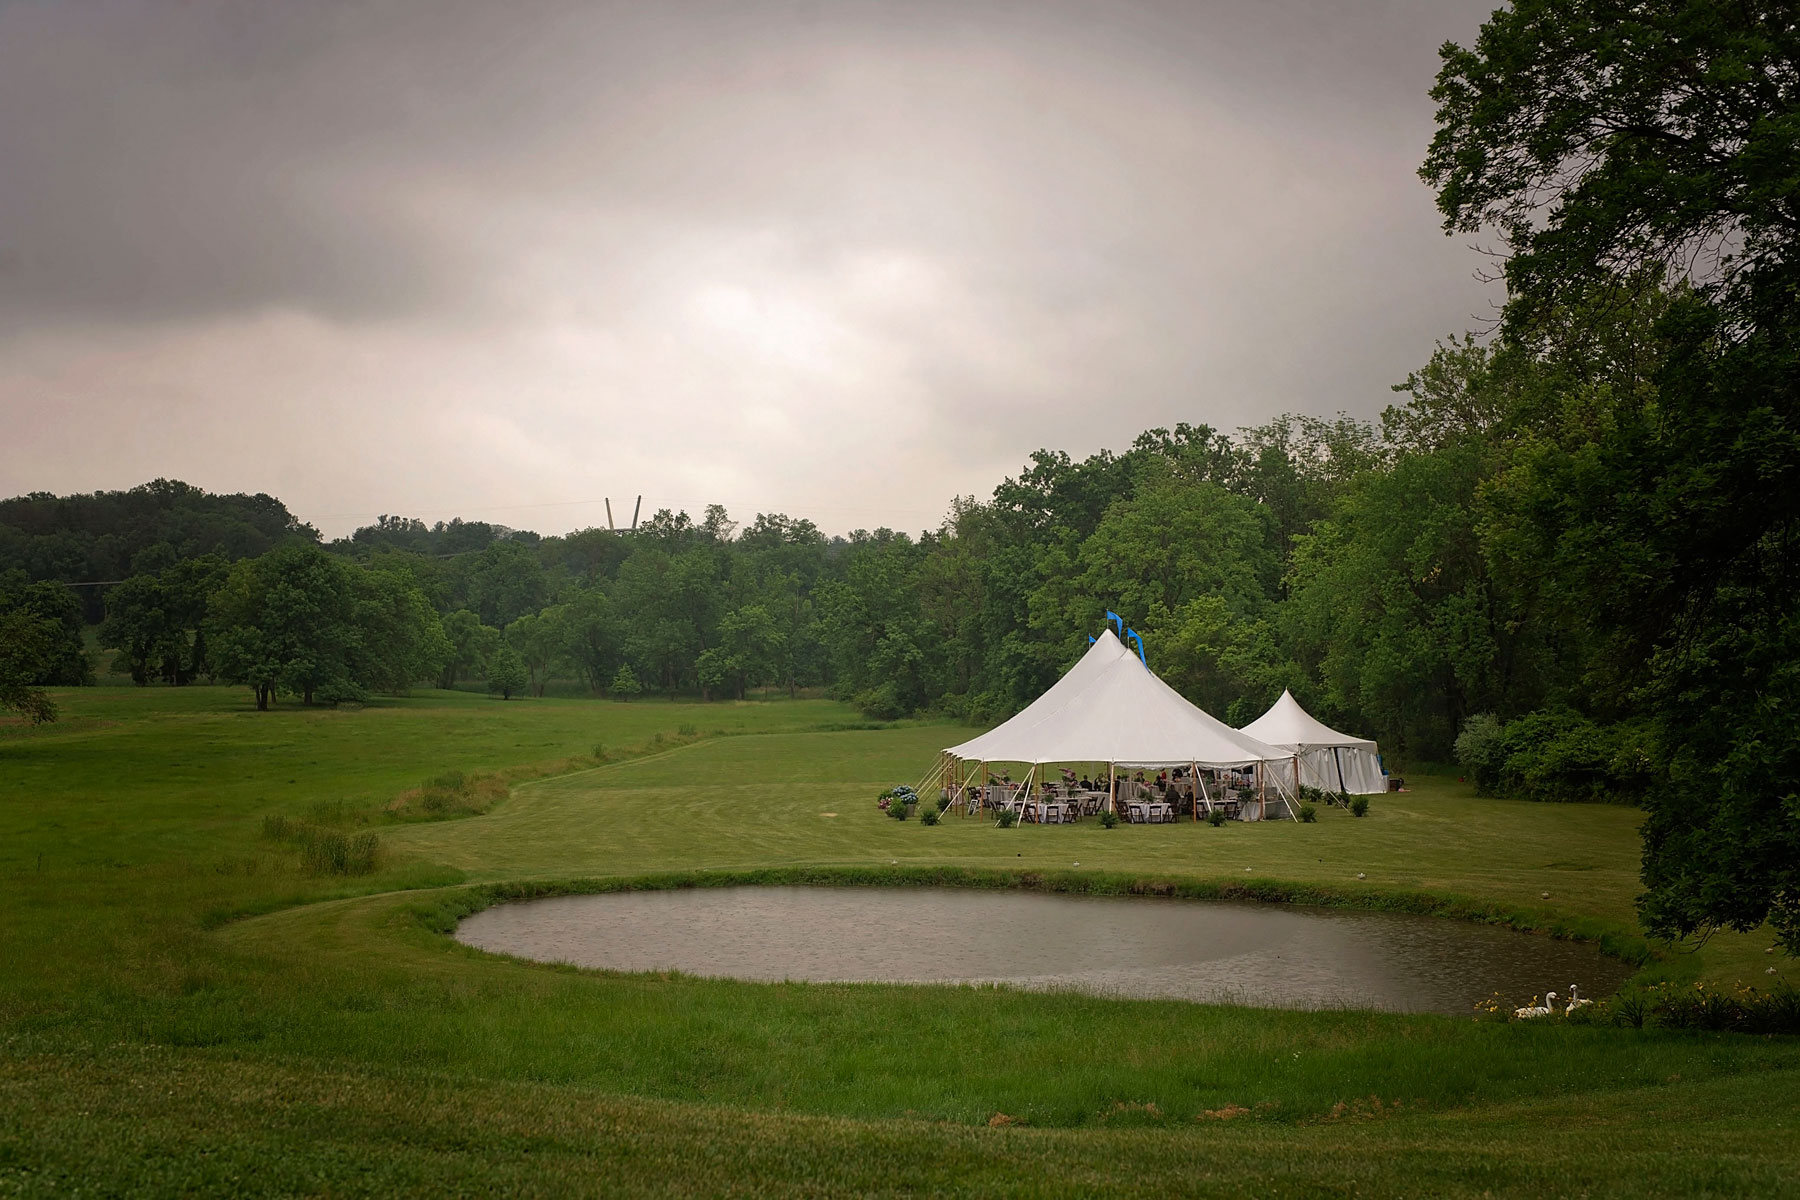 Property with sailcloth tent set up for a wedding with grey skies